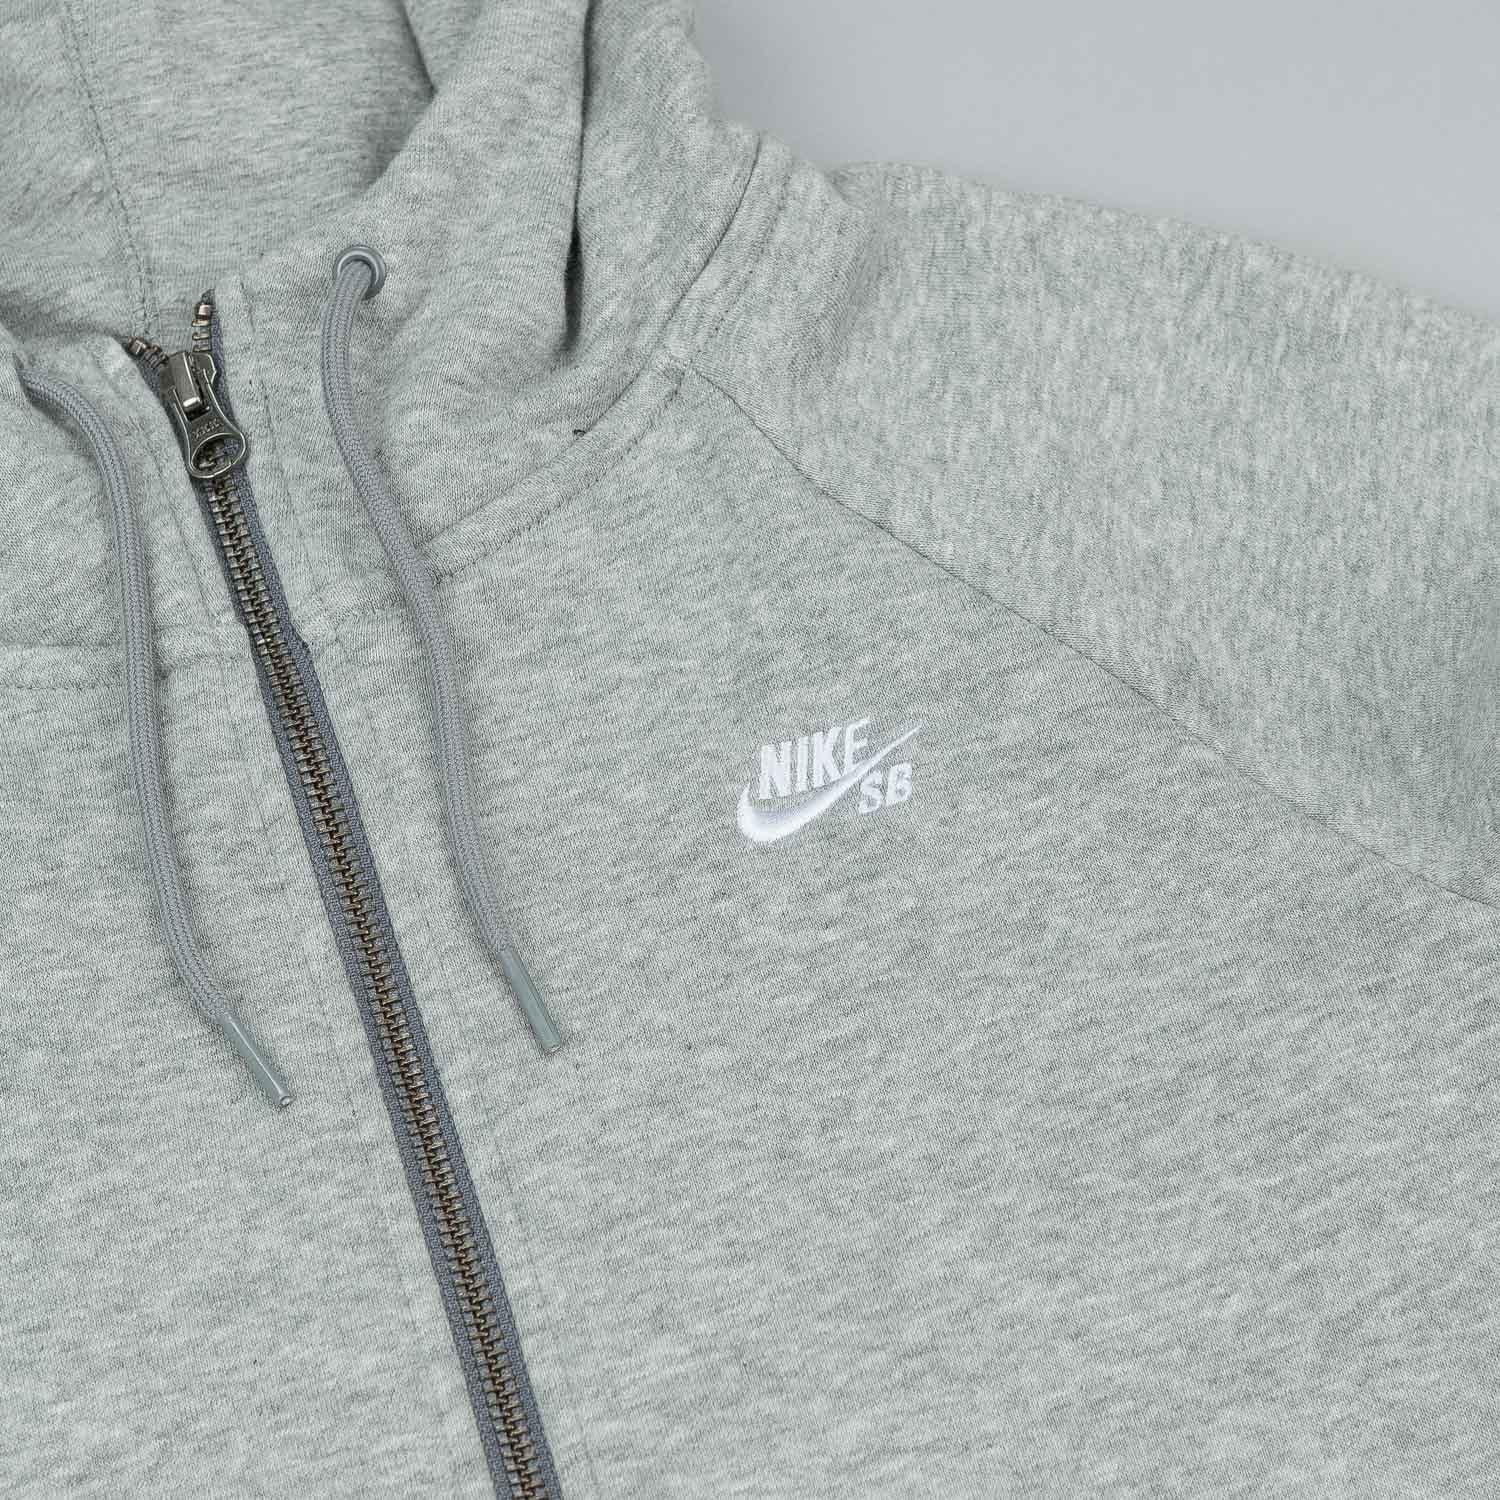 NIke SB Icon Zipped Hooded Sweatshirt - Dark Grey Heather / White